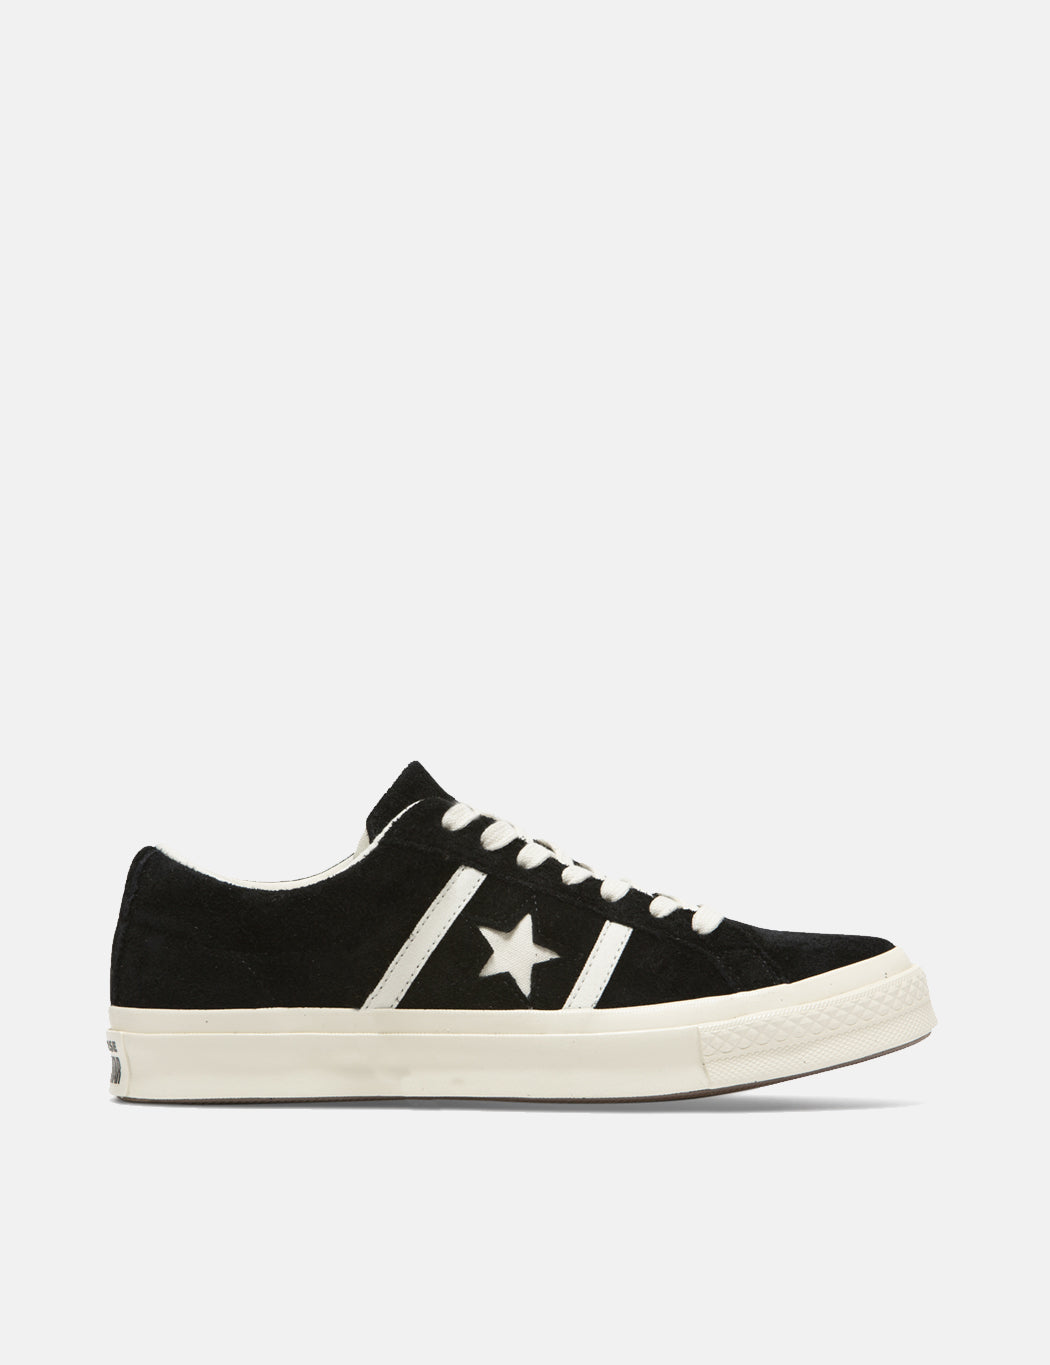 2408a9d5c477 Converse One Star Academy Low Top (164525C) in Black Egret Egret